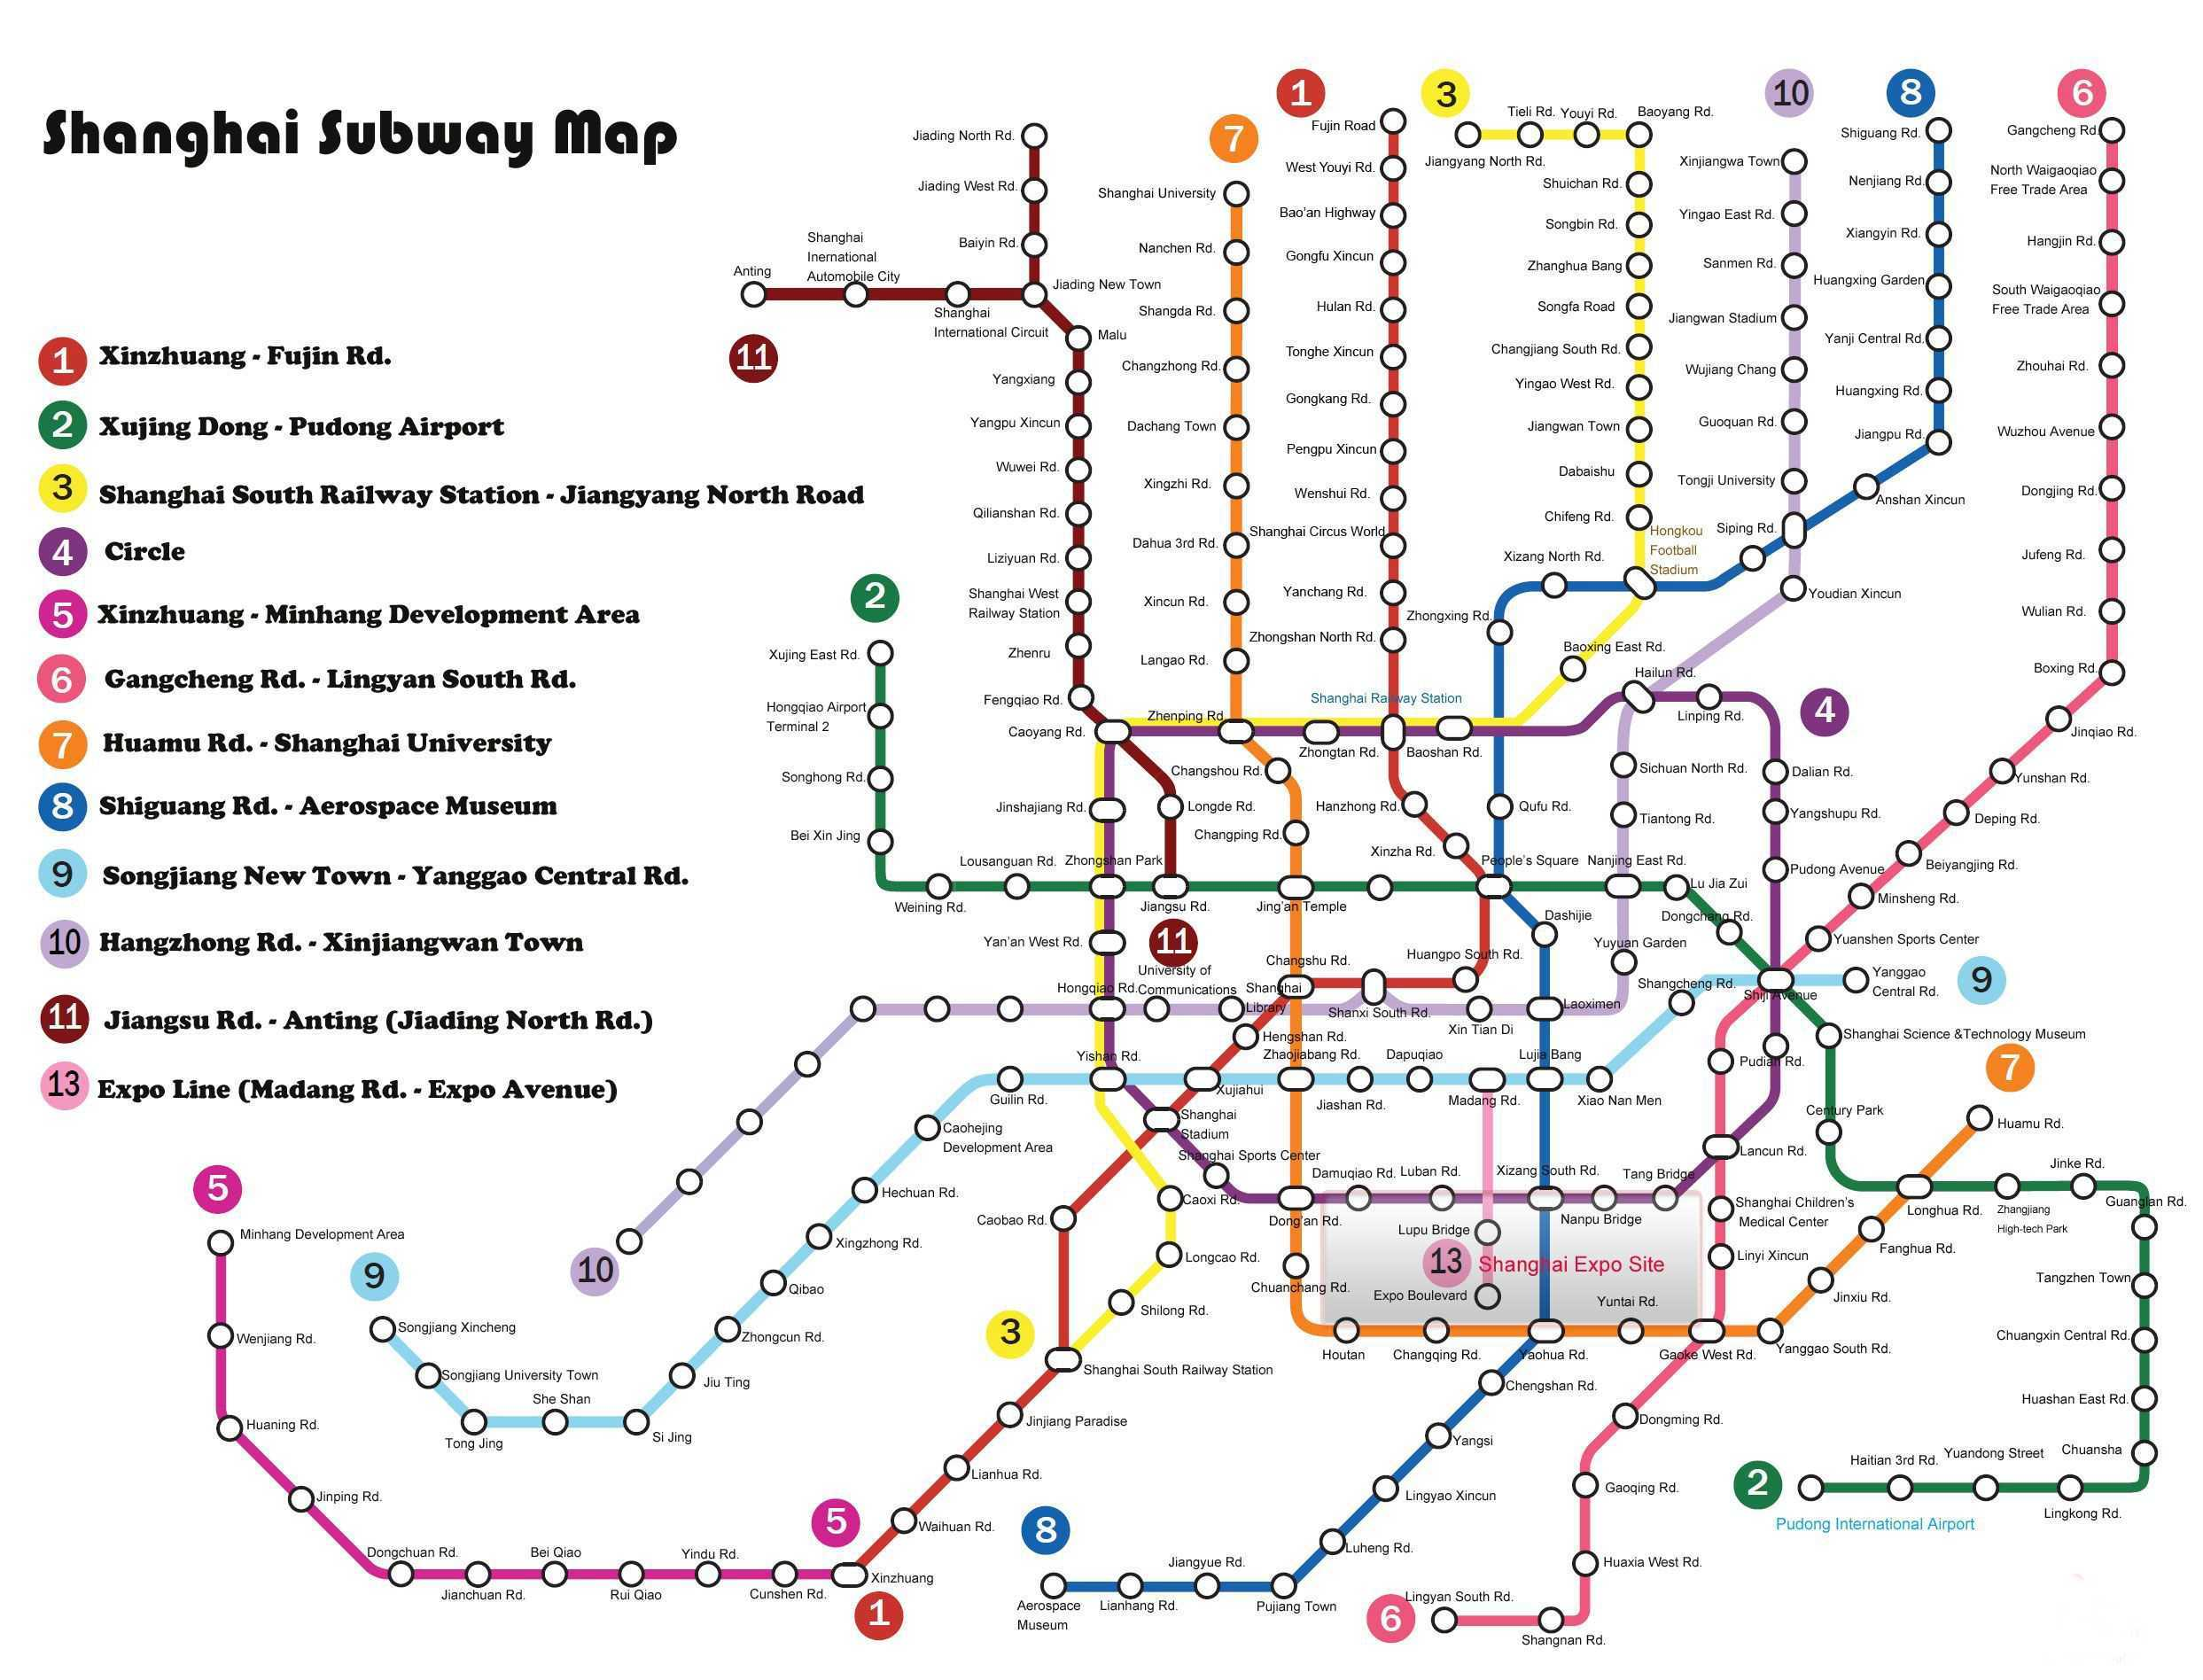 China Subway Maps Beijing Subway Map Shanghai Subway Map